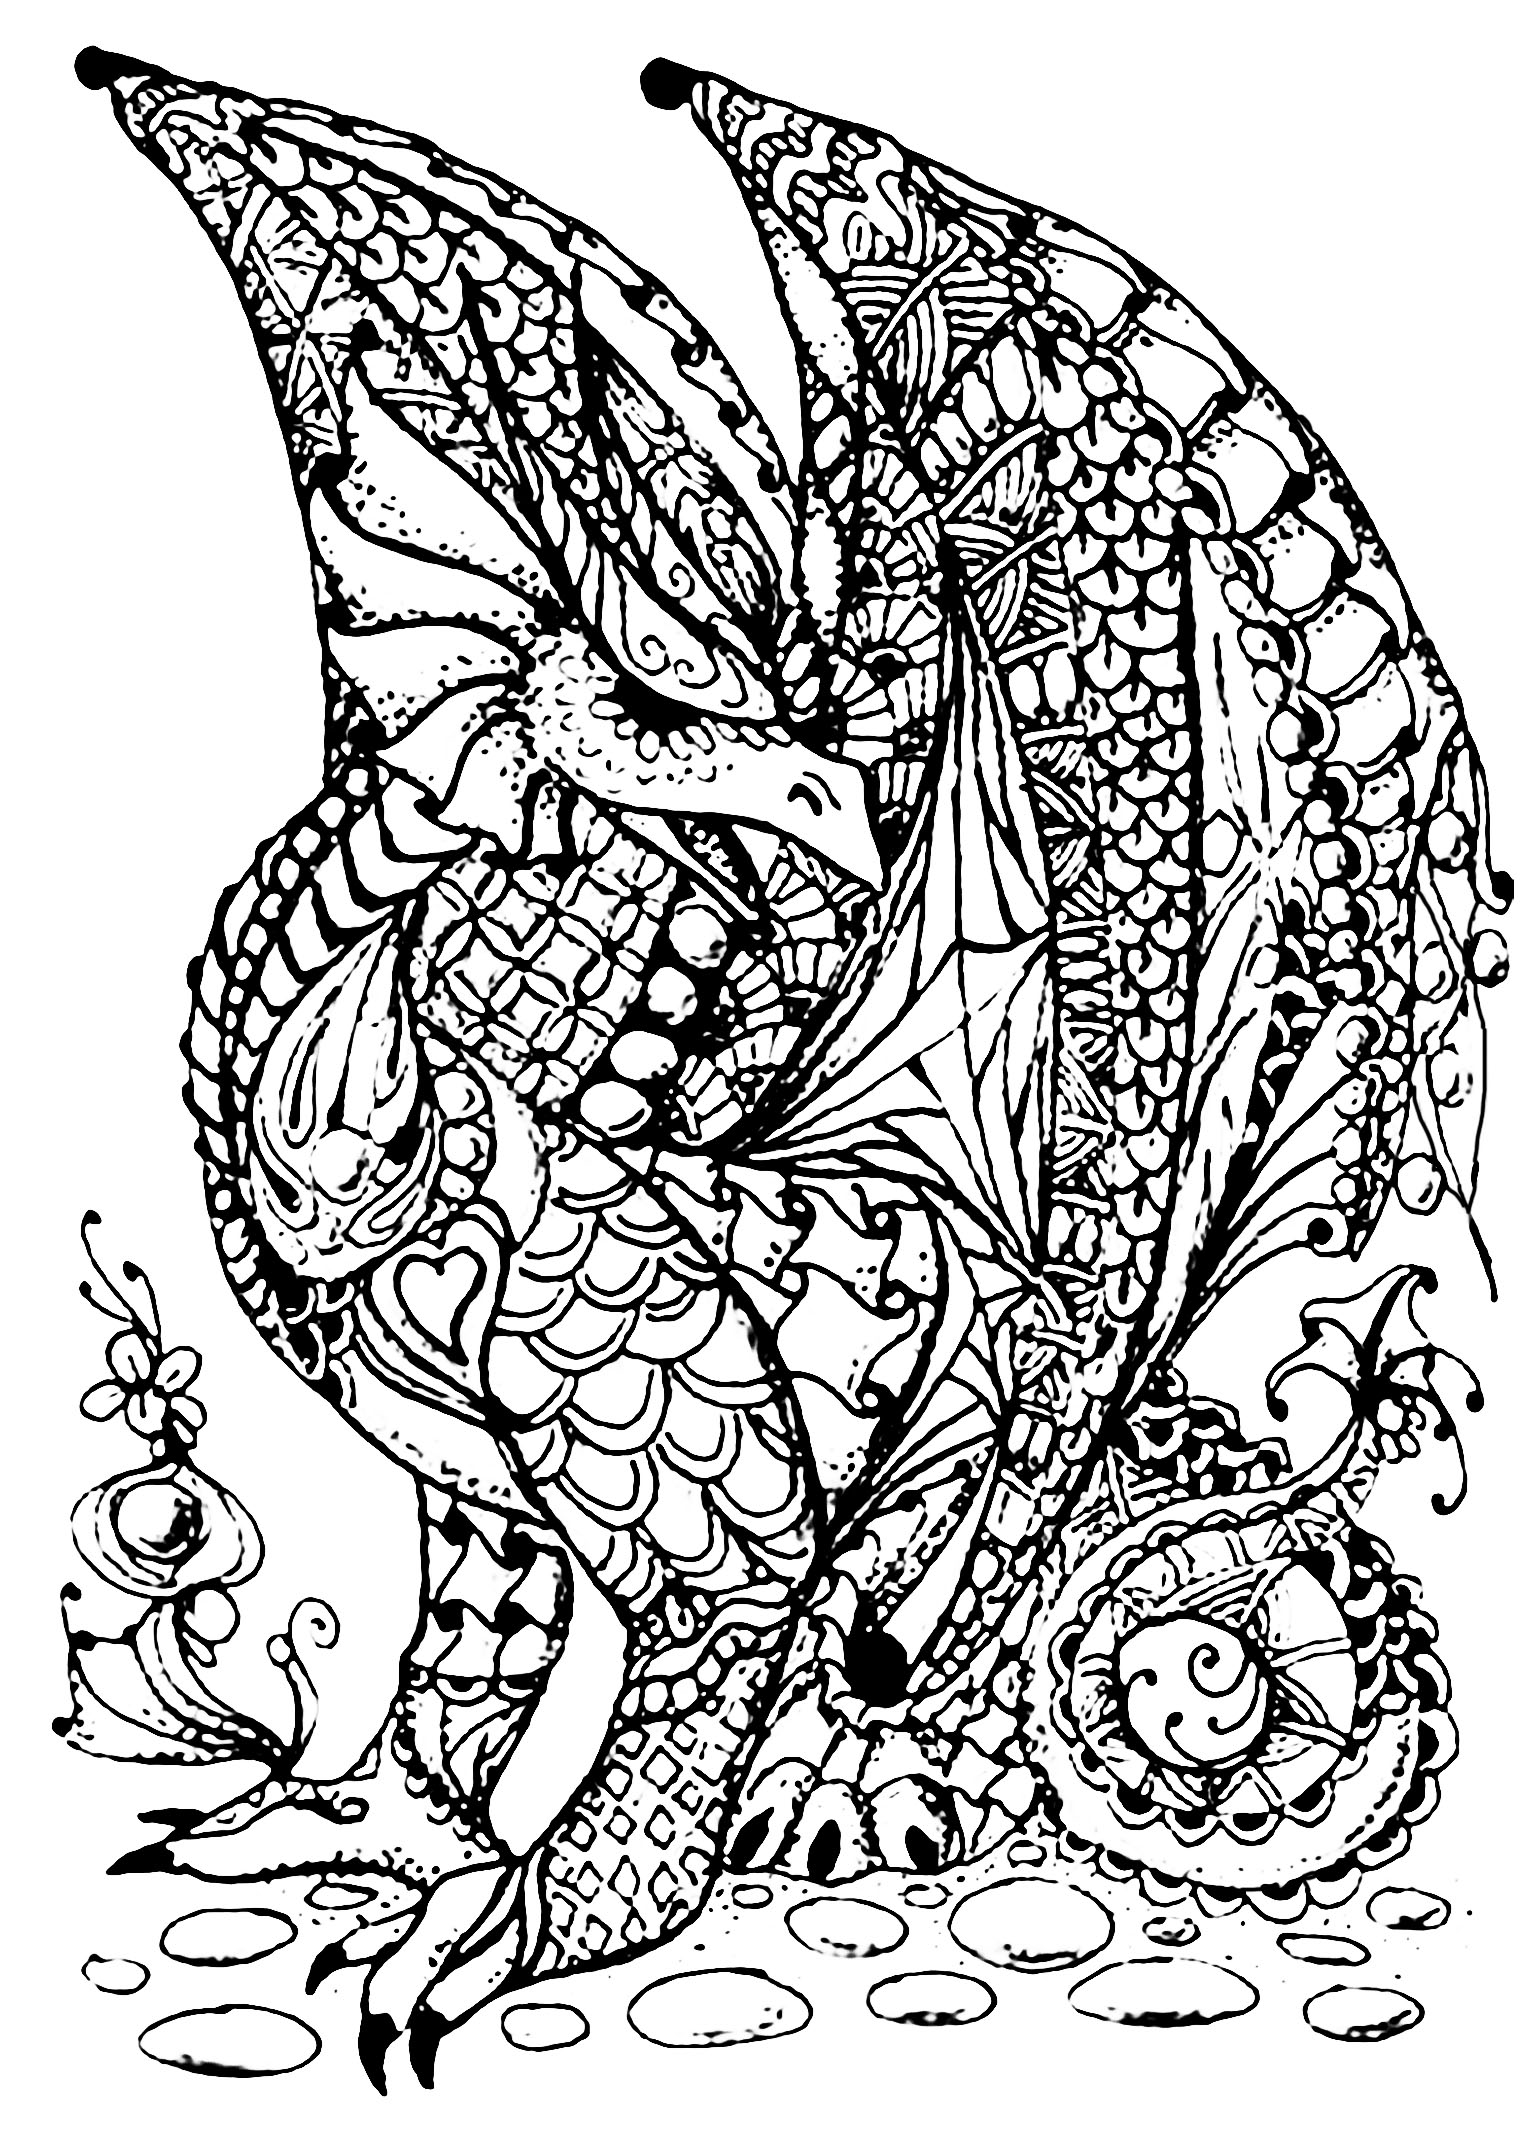 Dragon plein d ecailles dragons coloriages difficiles - Coloriages de dragons ...